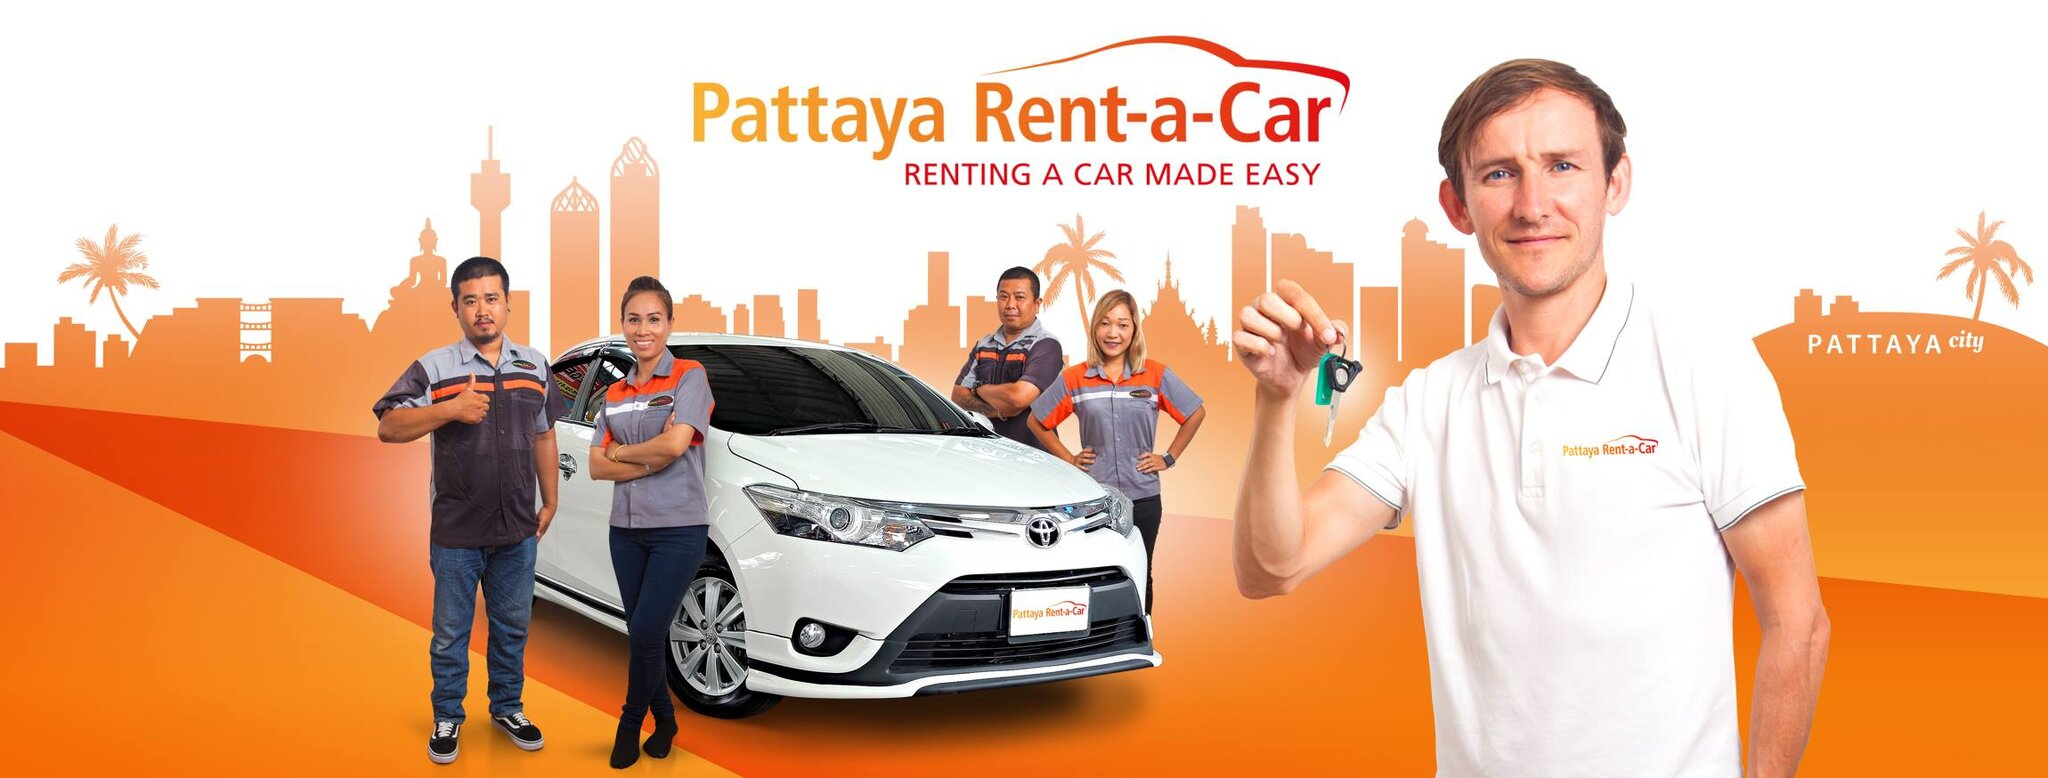 pattaya-rent-a-car.jpg